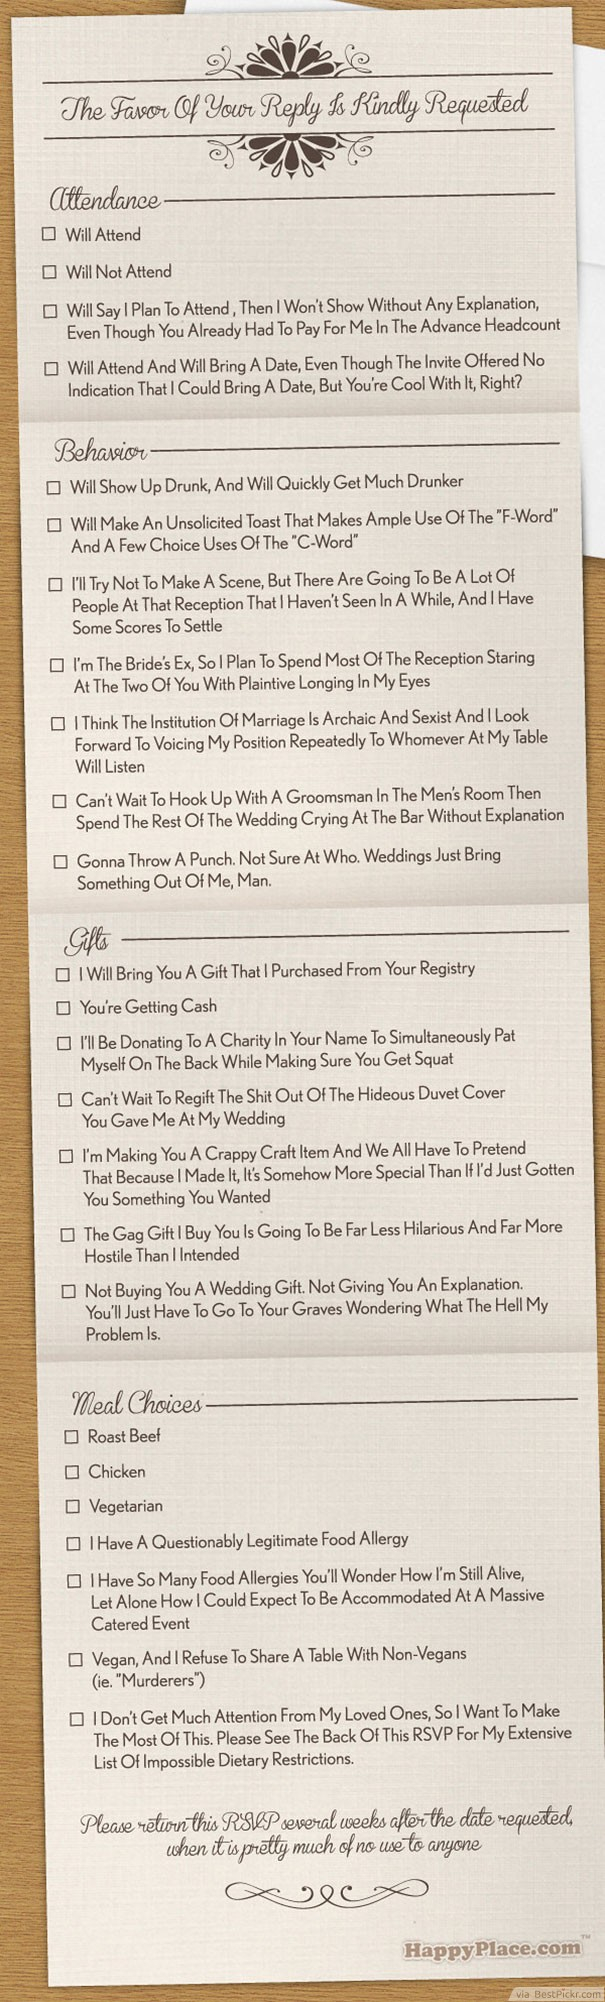 Fun Wedding Invitations 15 Funny Wedding Invitations Cards To Crack Guests Up Bestpickr